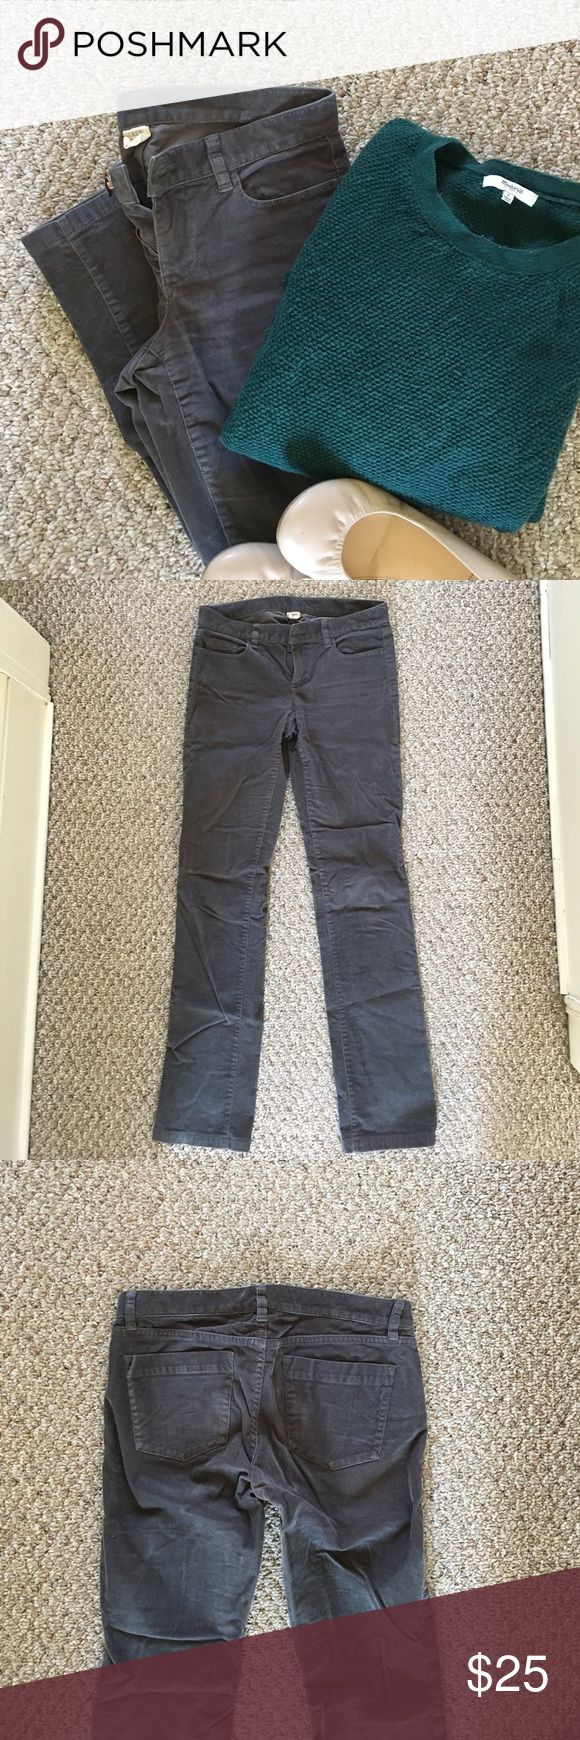 J. Crew City-fit luxe cord trouser J. Crew Gray corduroy pant. City fit. Hardly worn, just a tad too tight in calves. Pet/smoke free home. J. Crew Pants Skinny